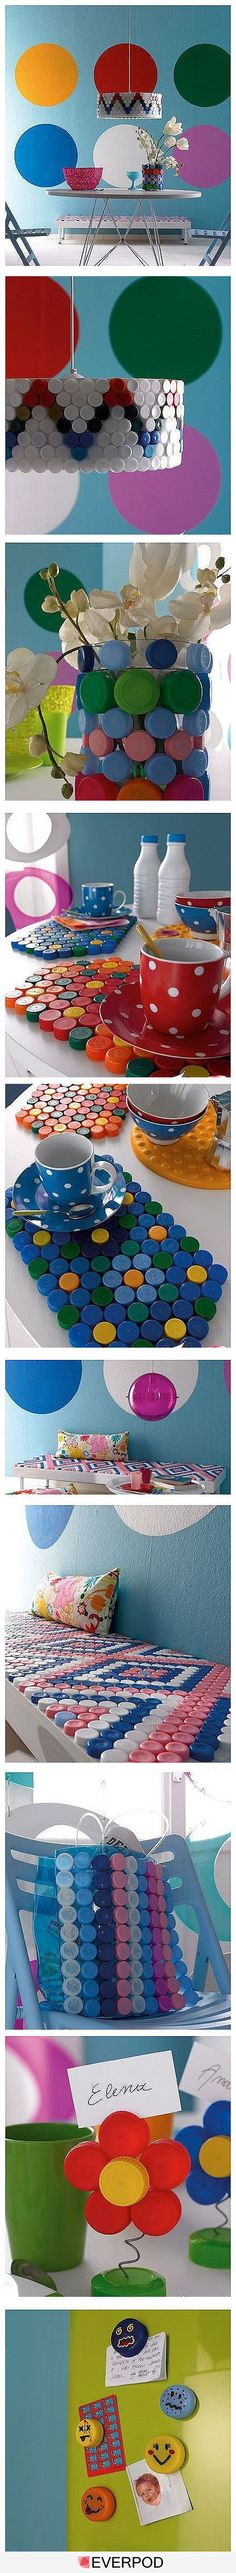 lids and caps from bottles, milk jugs, juice containers, etc. can make awesome DIY projects